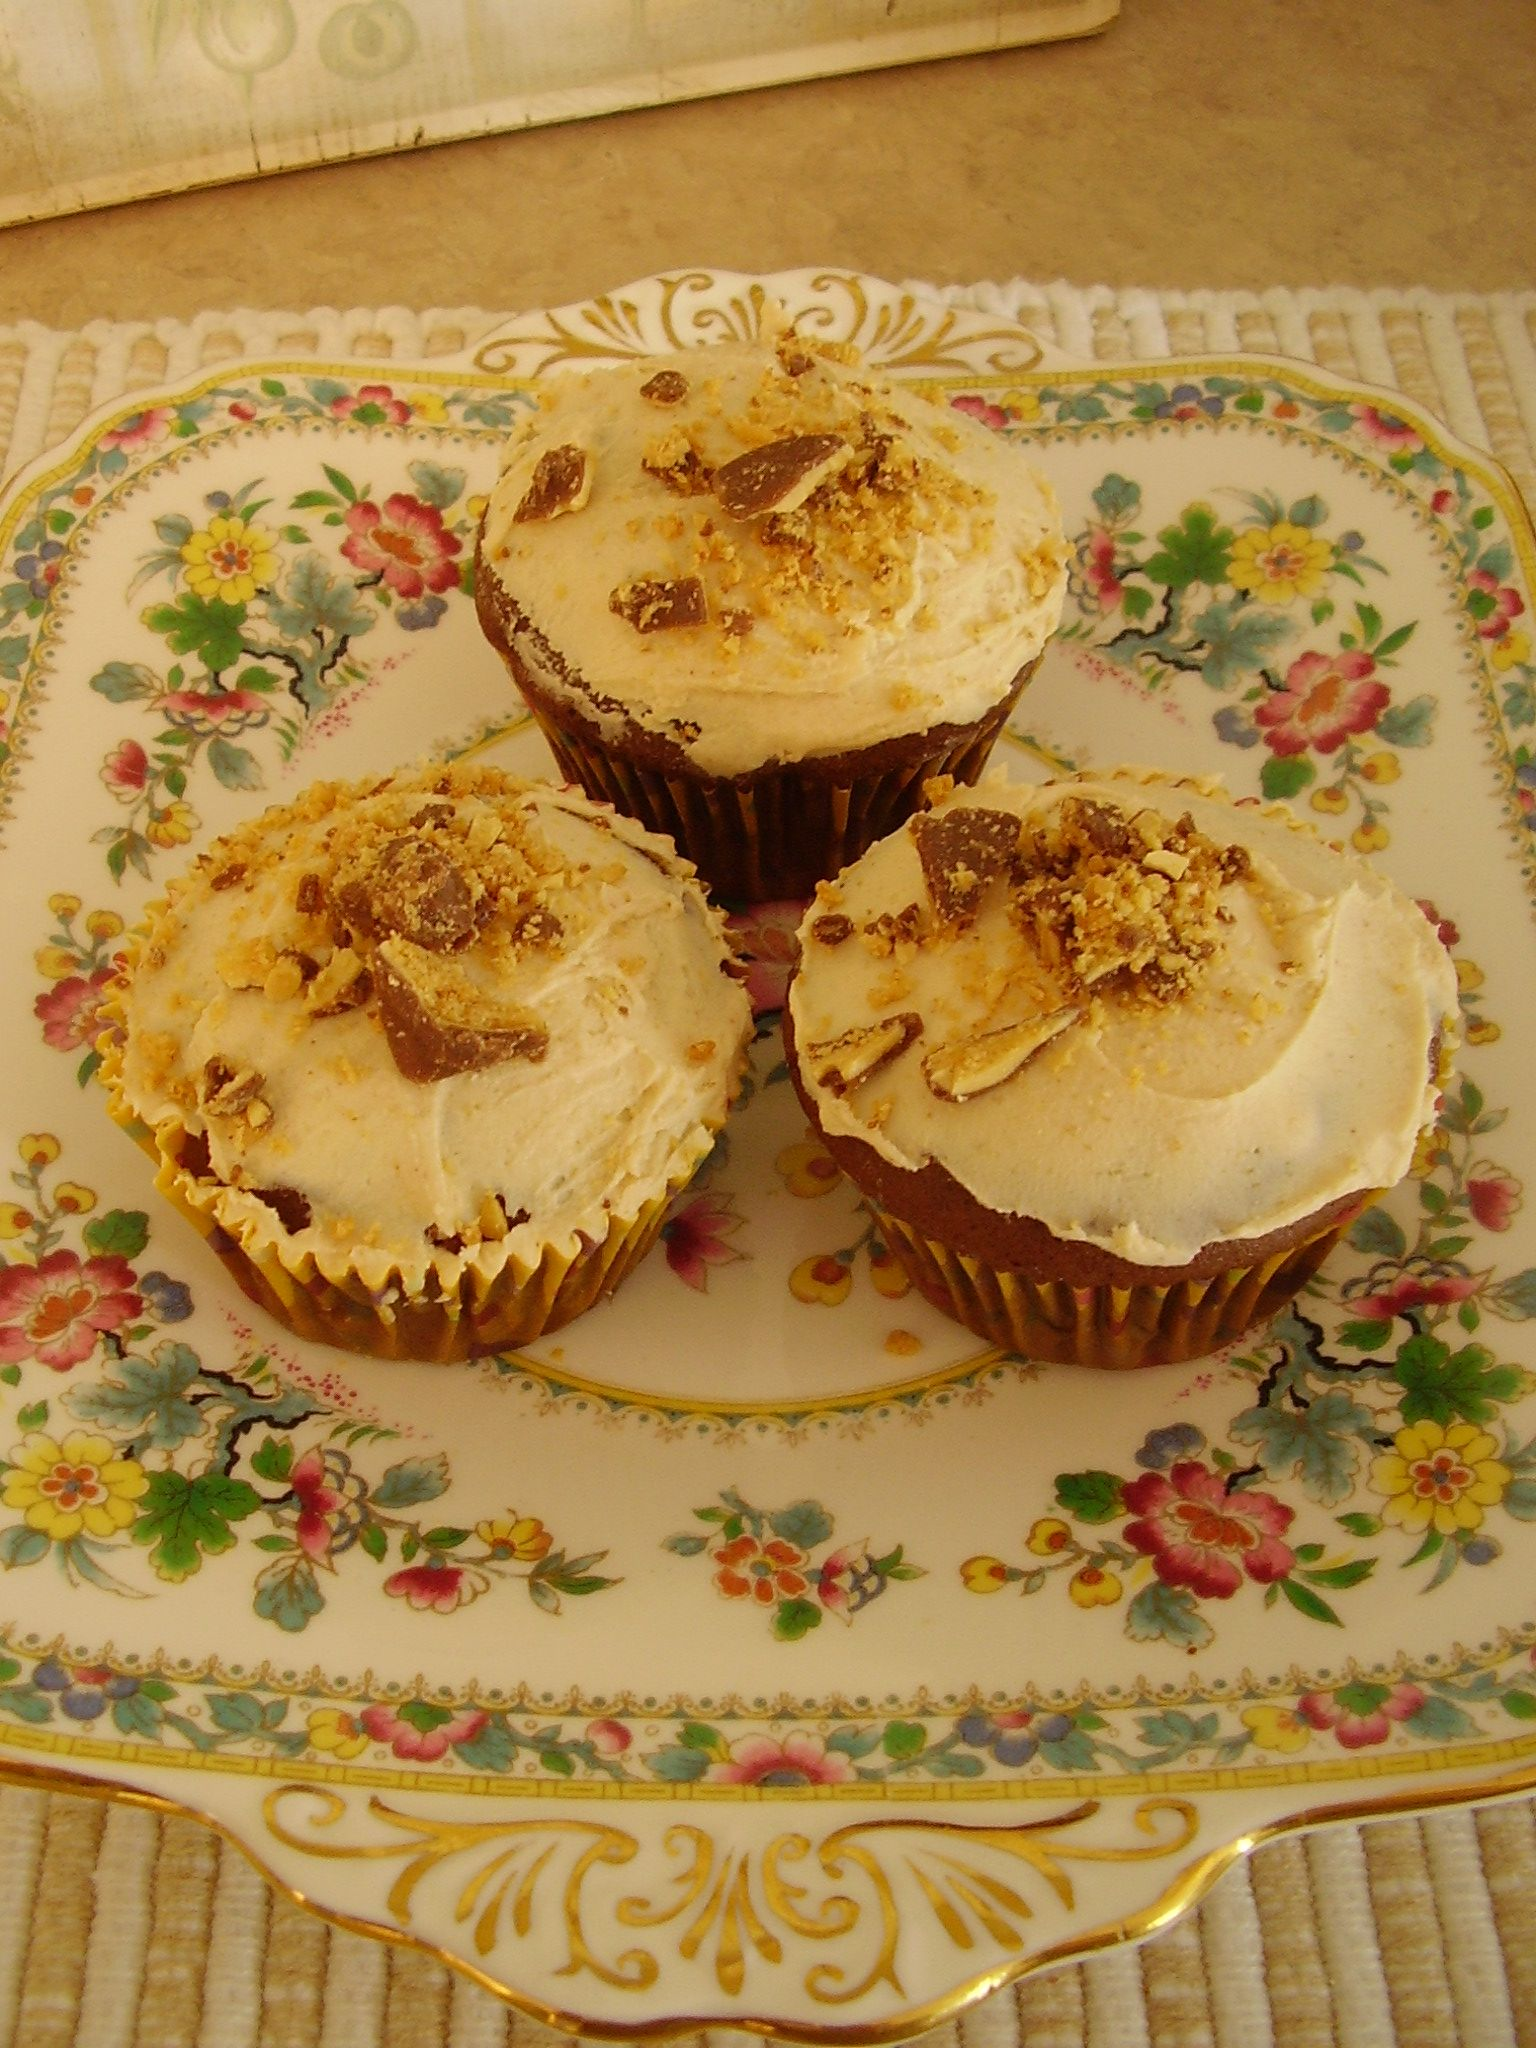 duncan hines peanut butter cupcakes